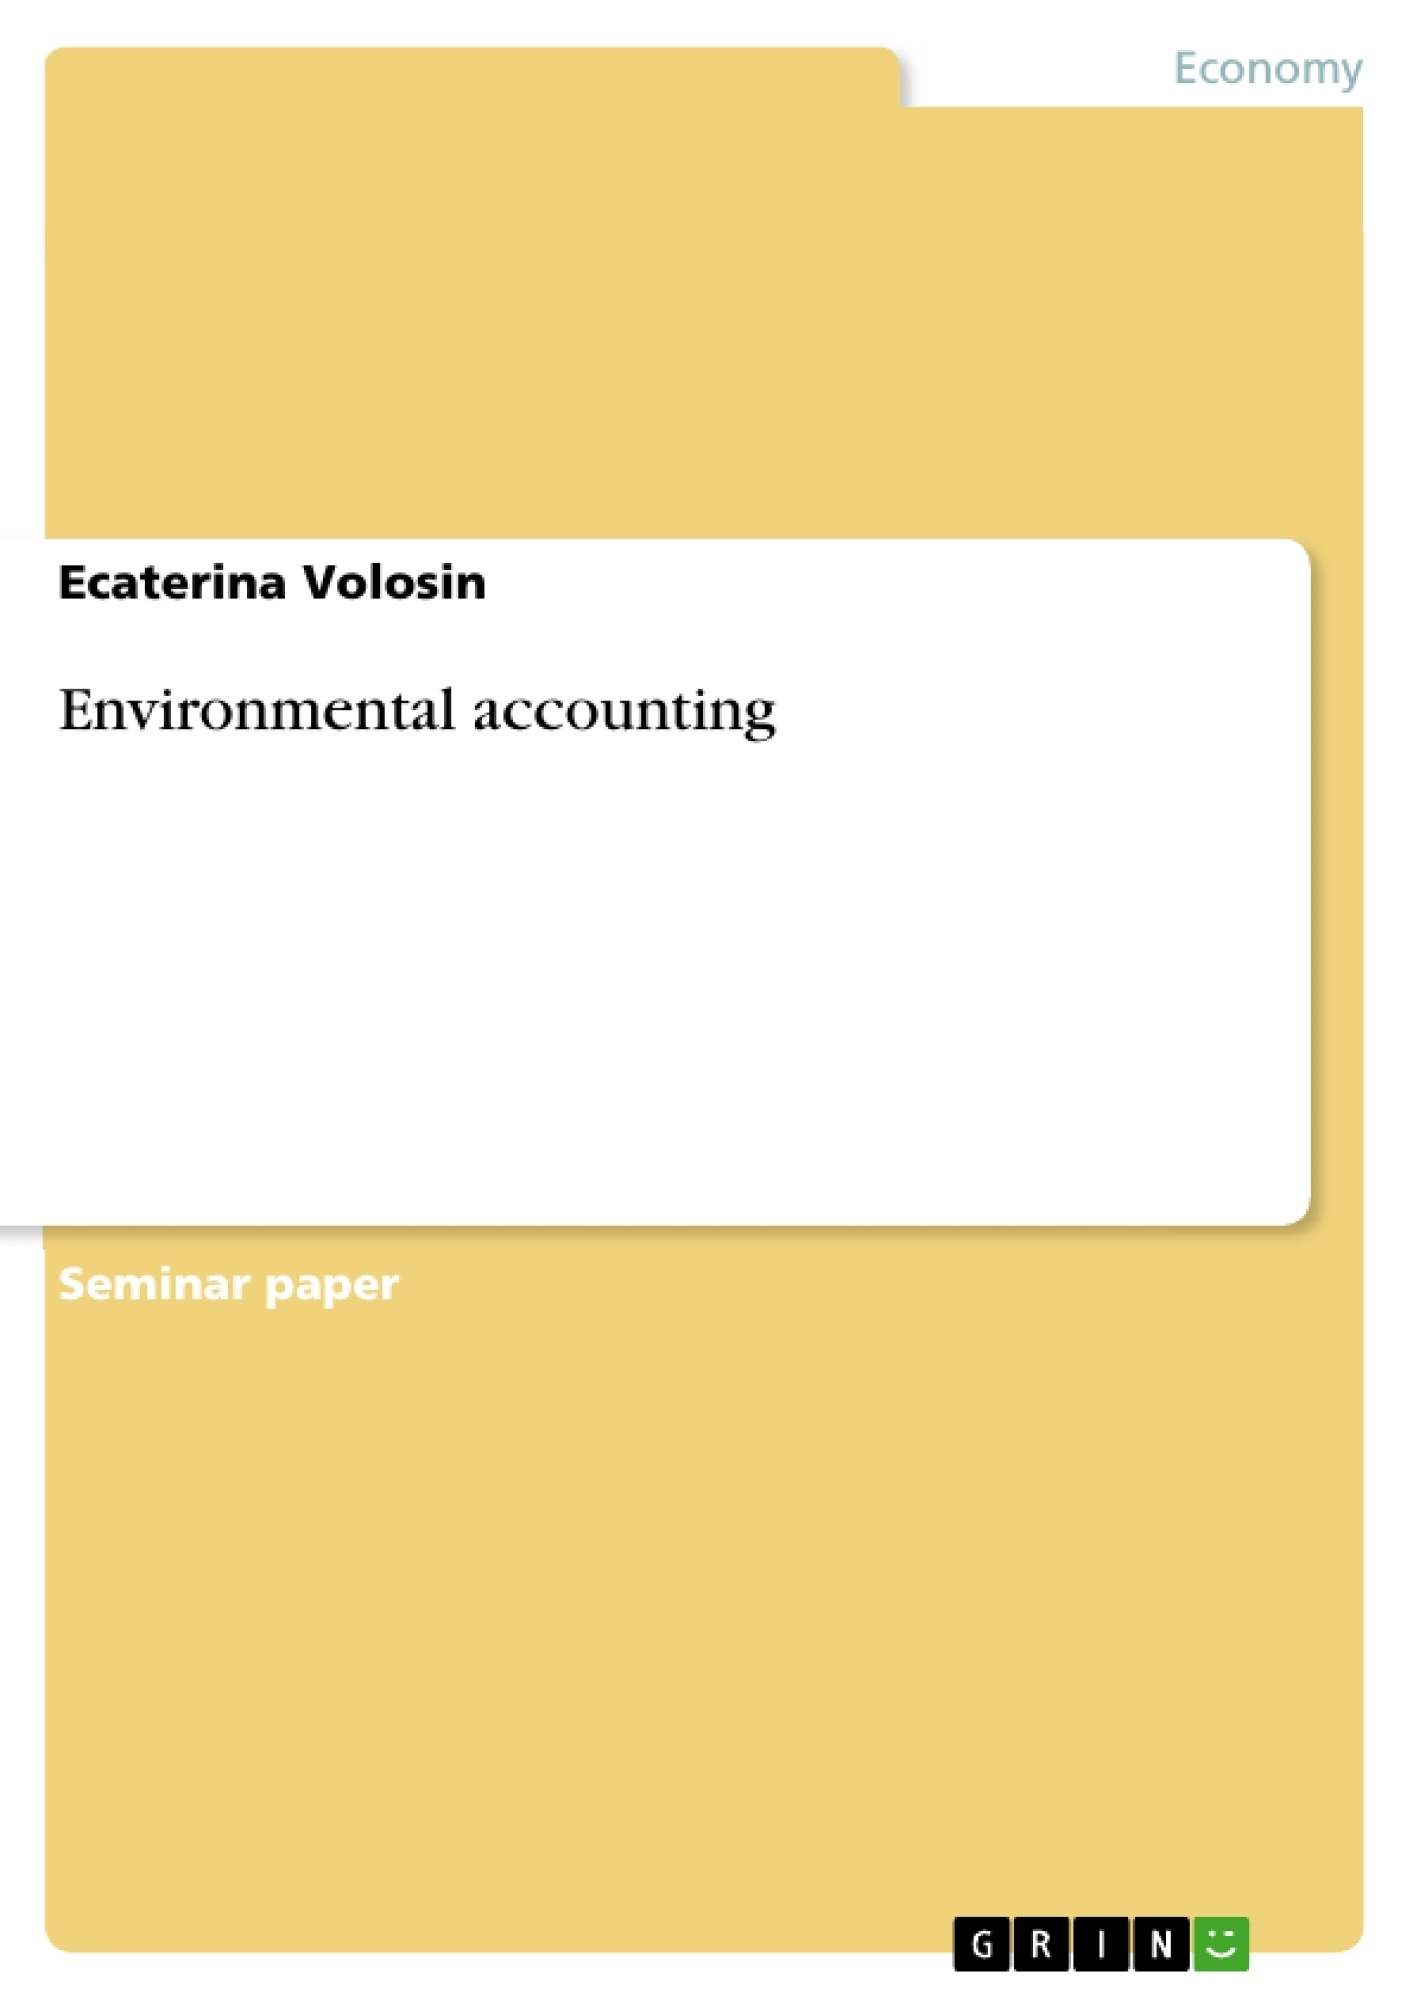 thesis on environmental management accounting This thesis argues that accounting serves sustainable management because environmental accounting provides the basis for resource management in an organisation the nation of.